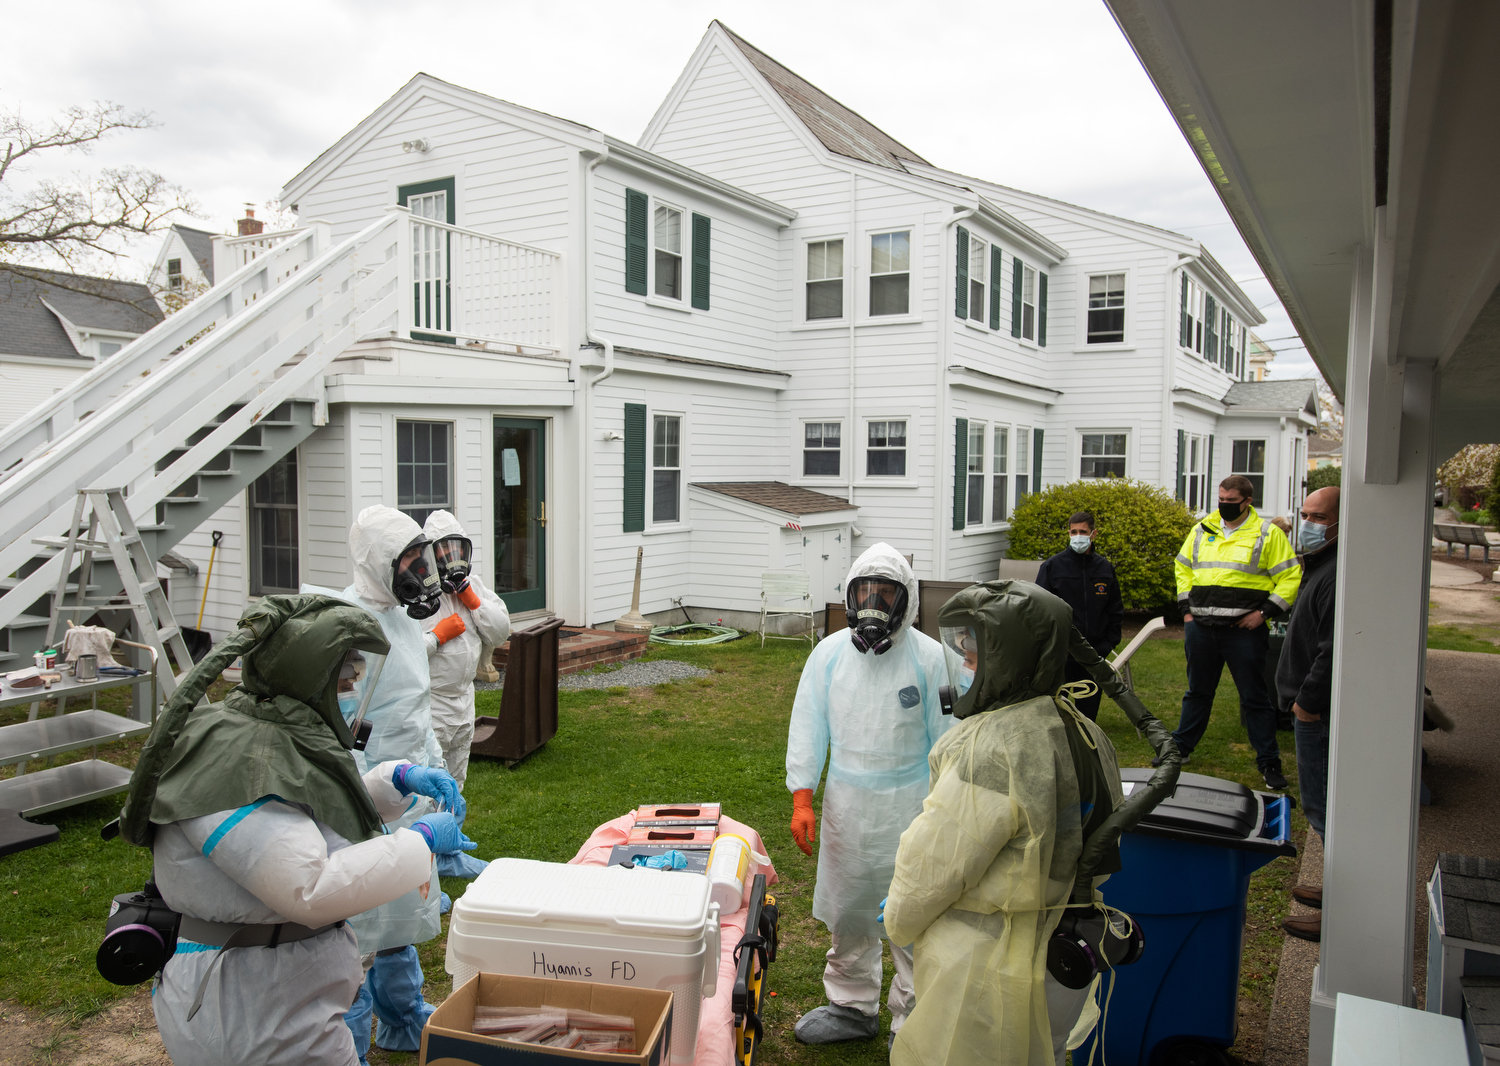 HYANNIS - Members of the Hyannis Fire Department, nurses from Cape Cod Healthcare and staff from Duffy Health Center set up a COVID-19 testing site at CHAMP Homes transitional housing for adults who have experienced homelessness on Tuesday, May 12, 2020.